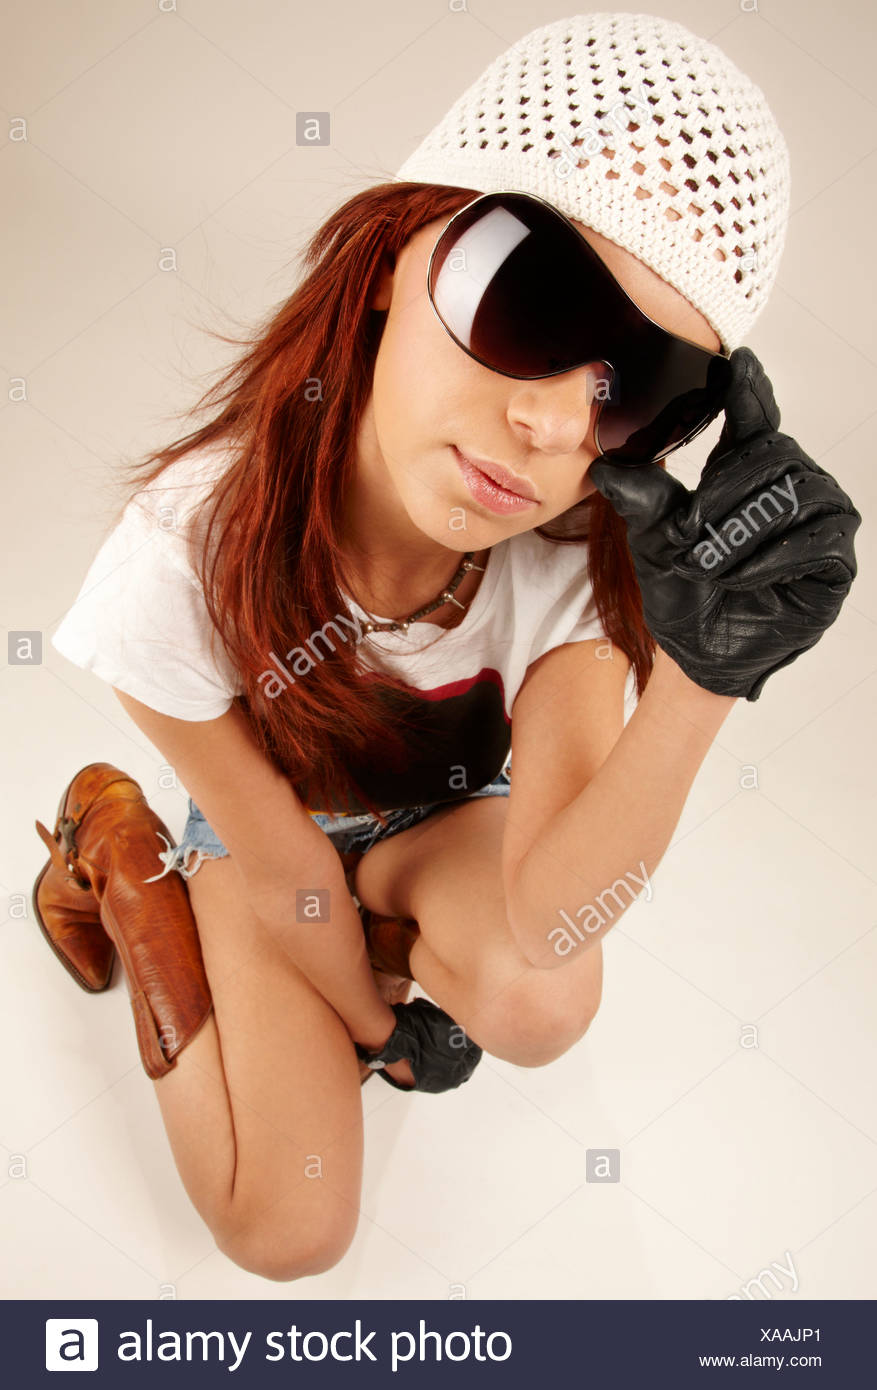 wideangle portrait of cool girl in big sunglasses - Stock Image